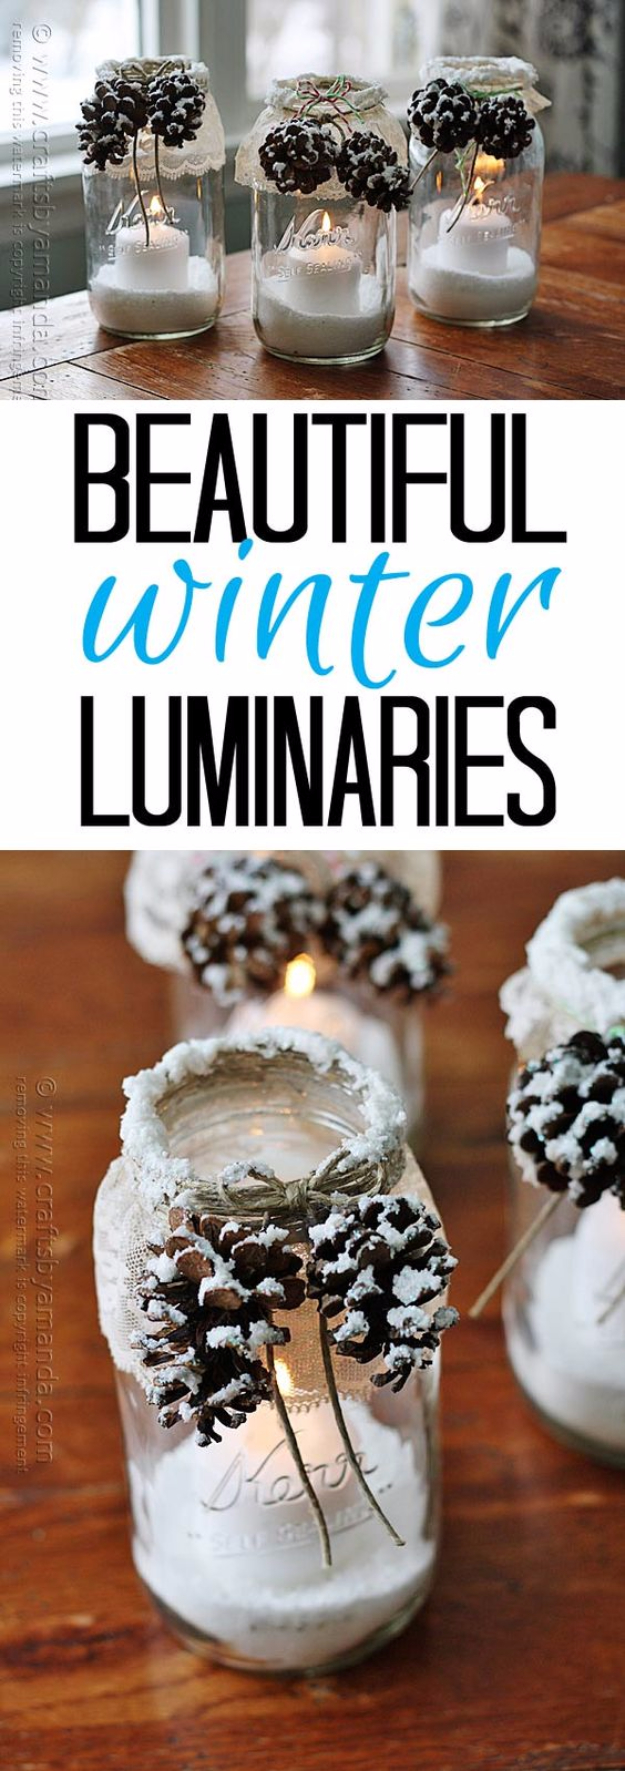 28 most beautiful christmas luminaries diy christmas luminaries and home decor for the holidays snowy pinecone candle jars cool solutioingenieria Images